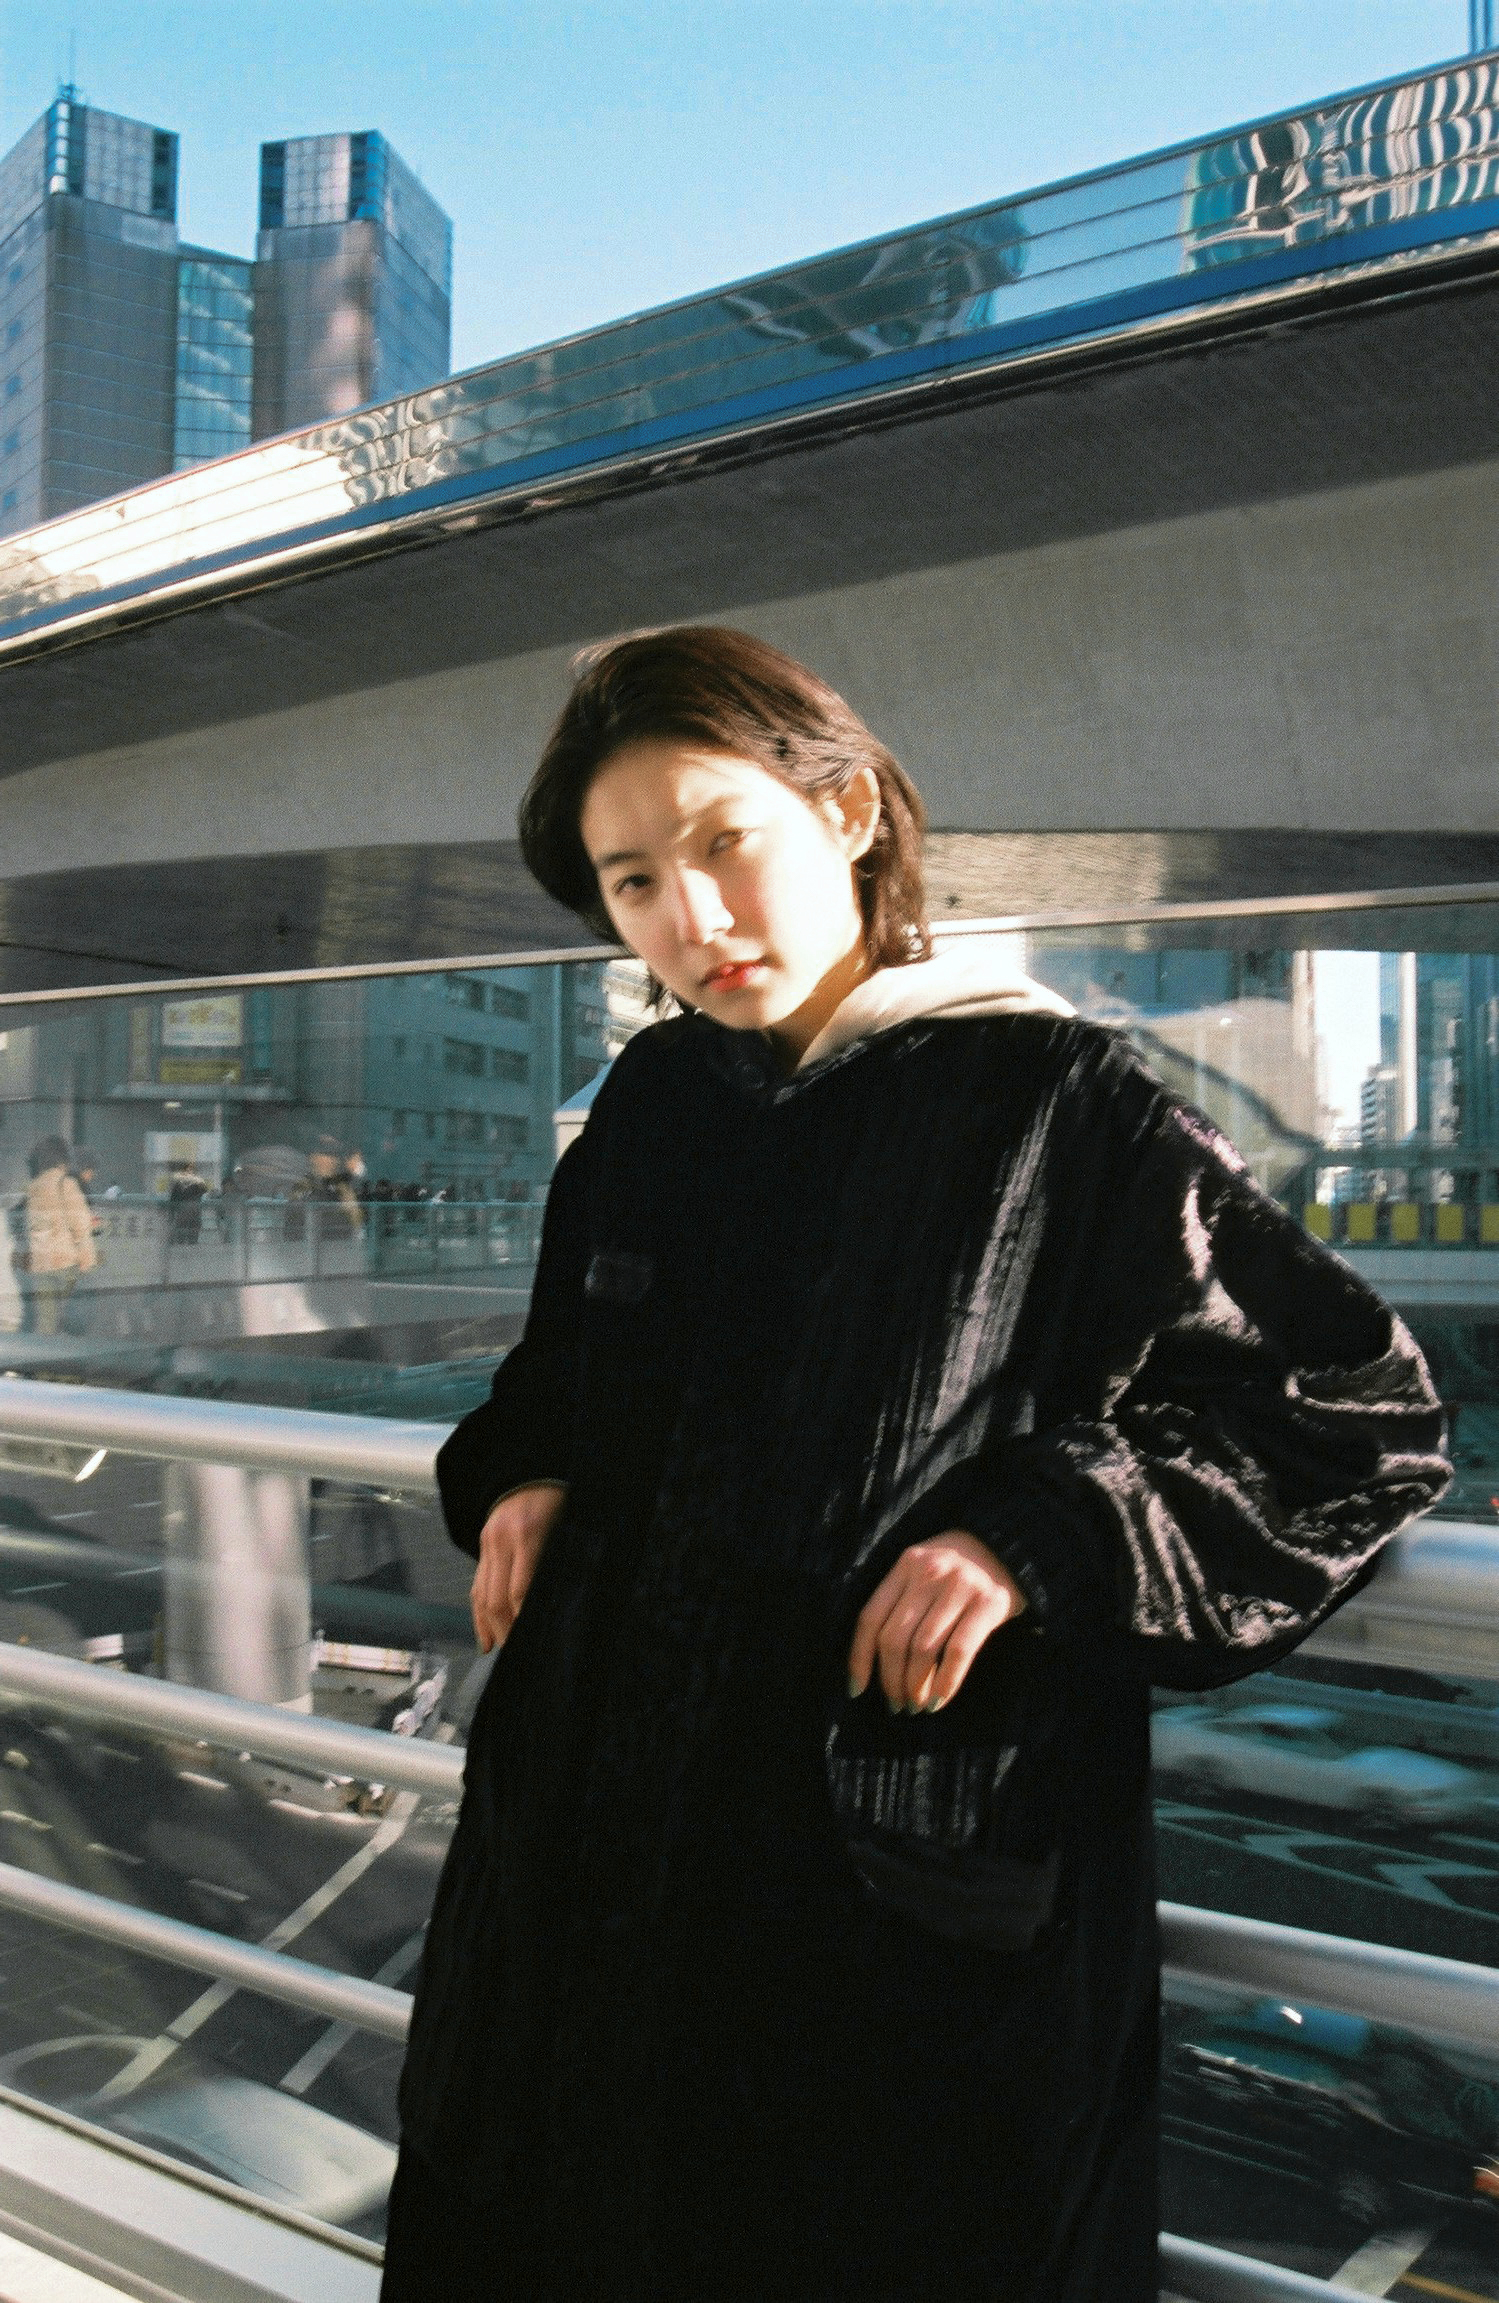 ariharamiyuki professor. e lookbook aw19 japan boyish unisex